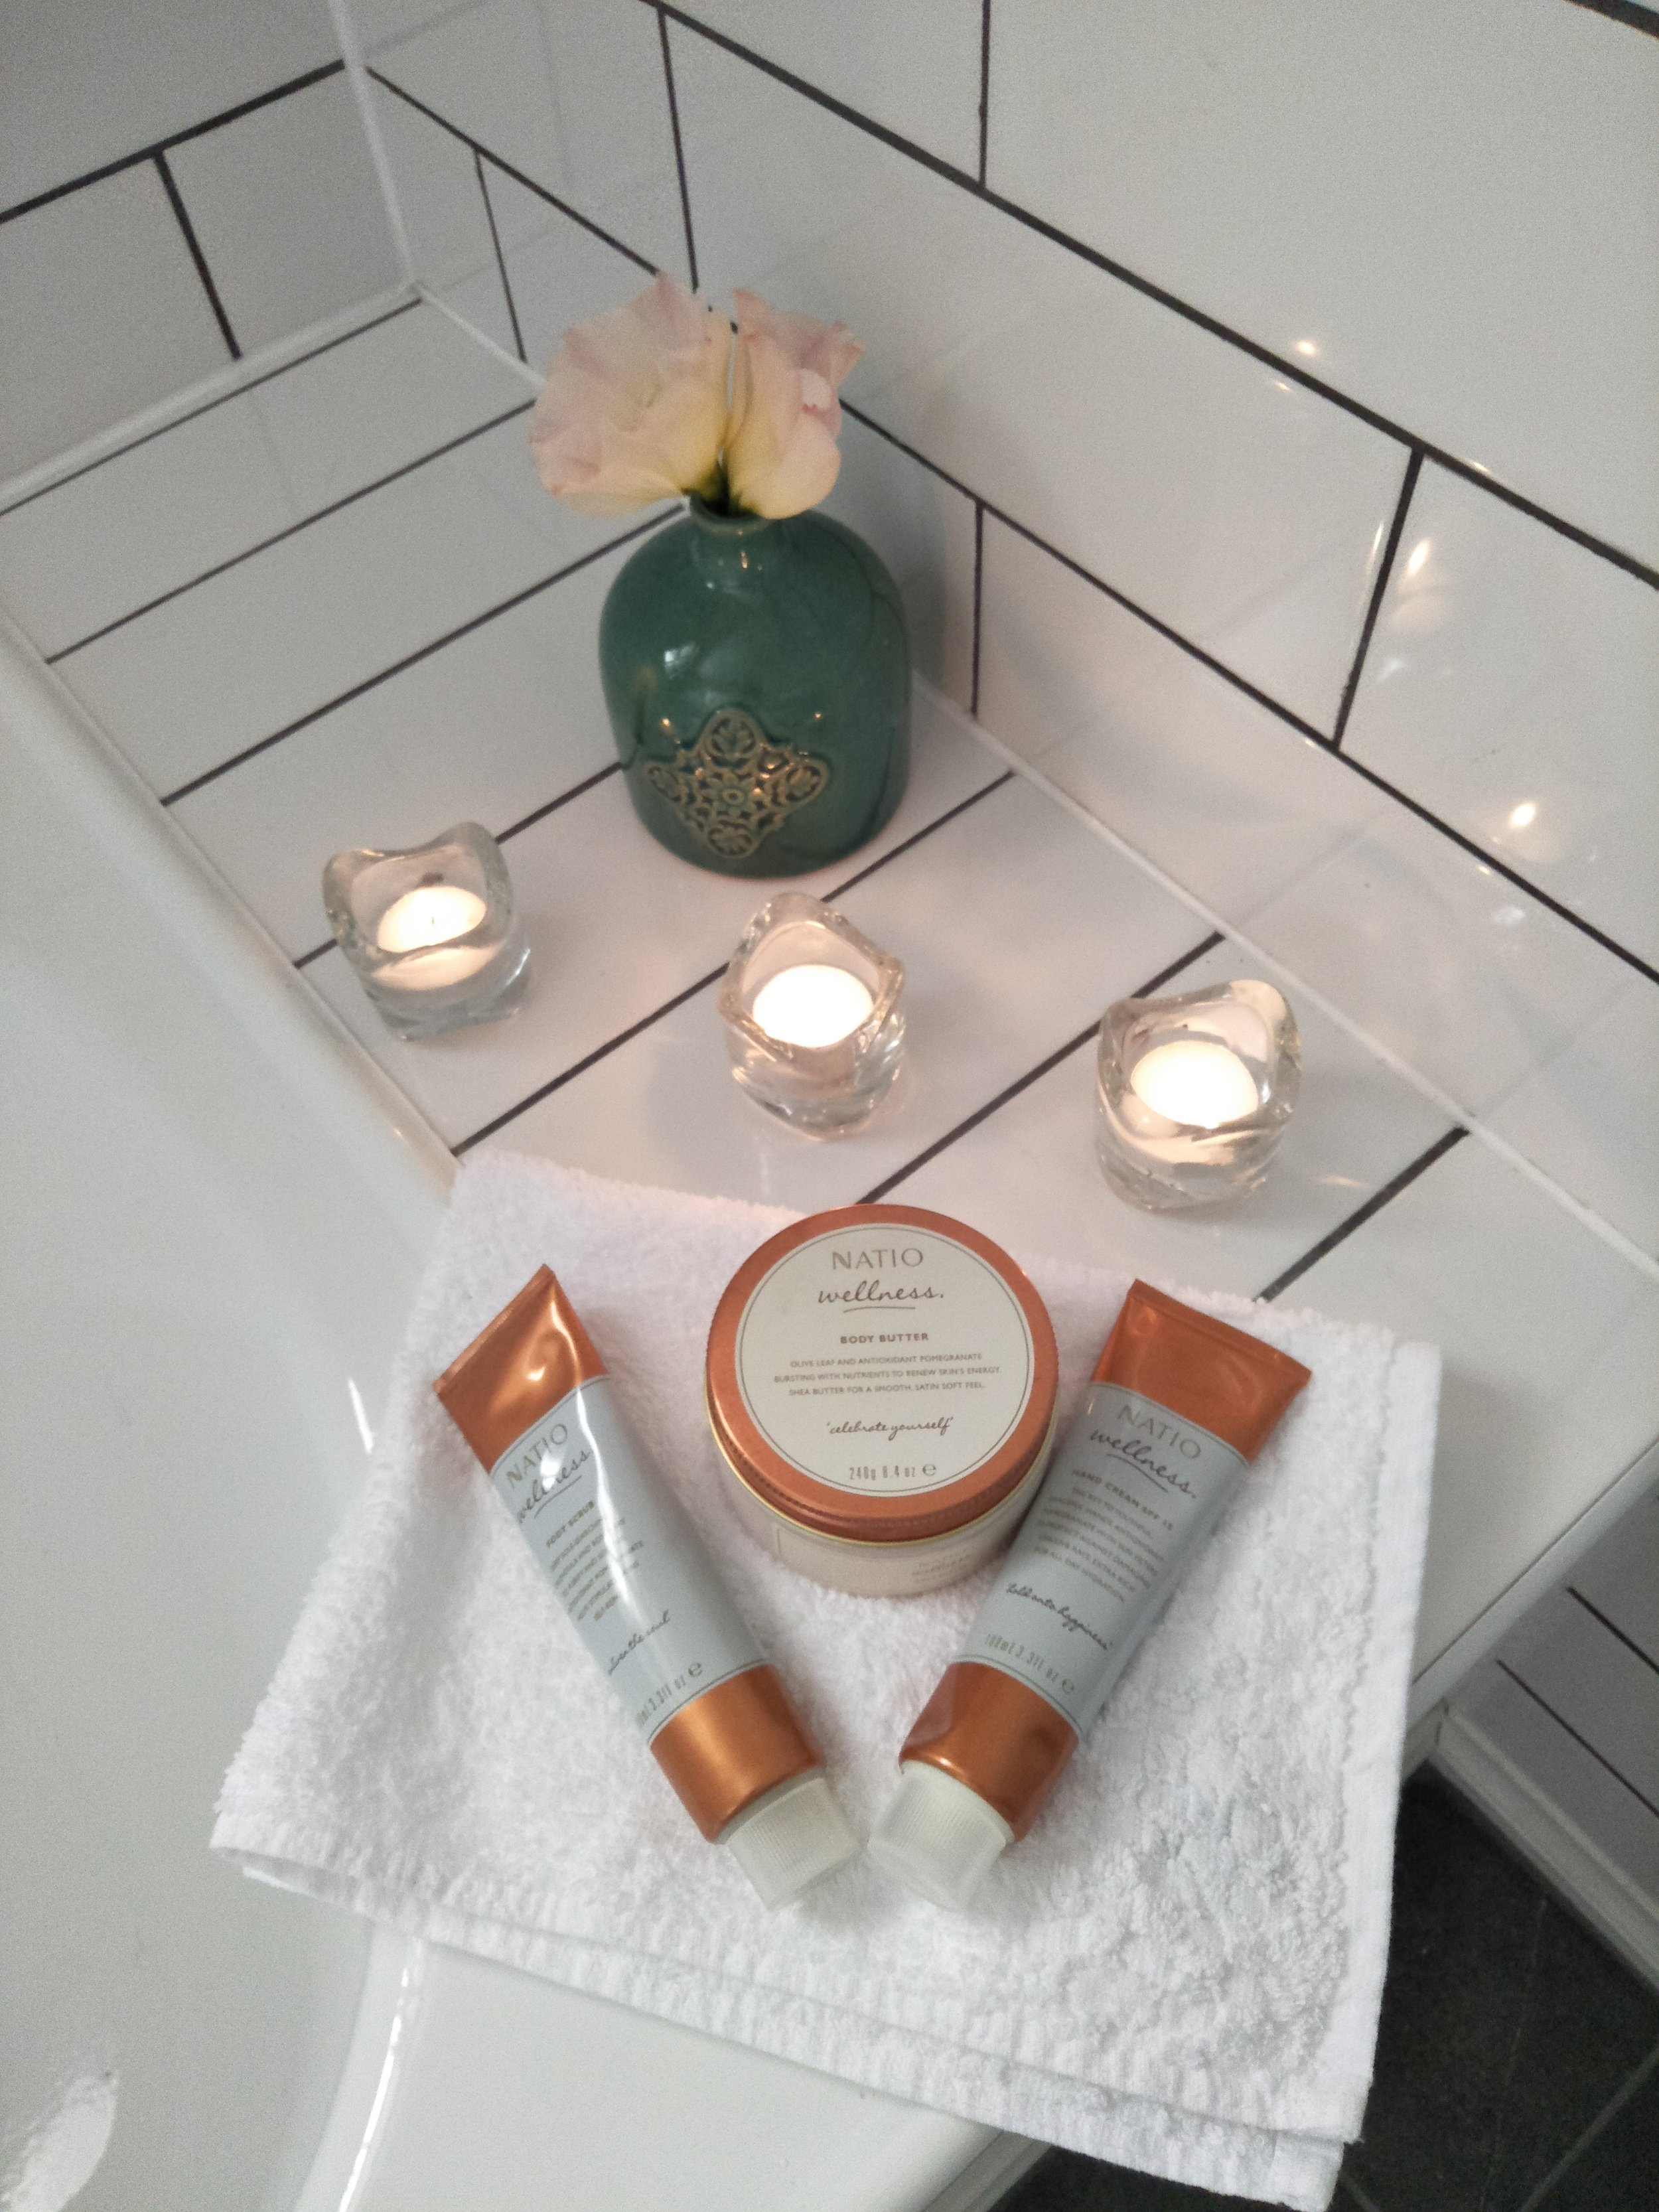 Garden view bathroom with candles.jpg